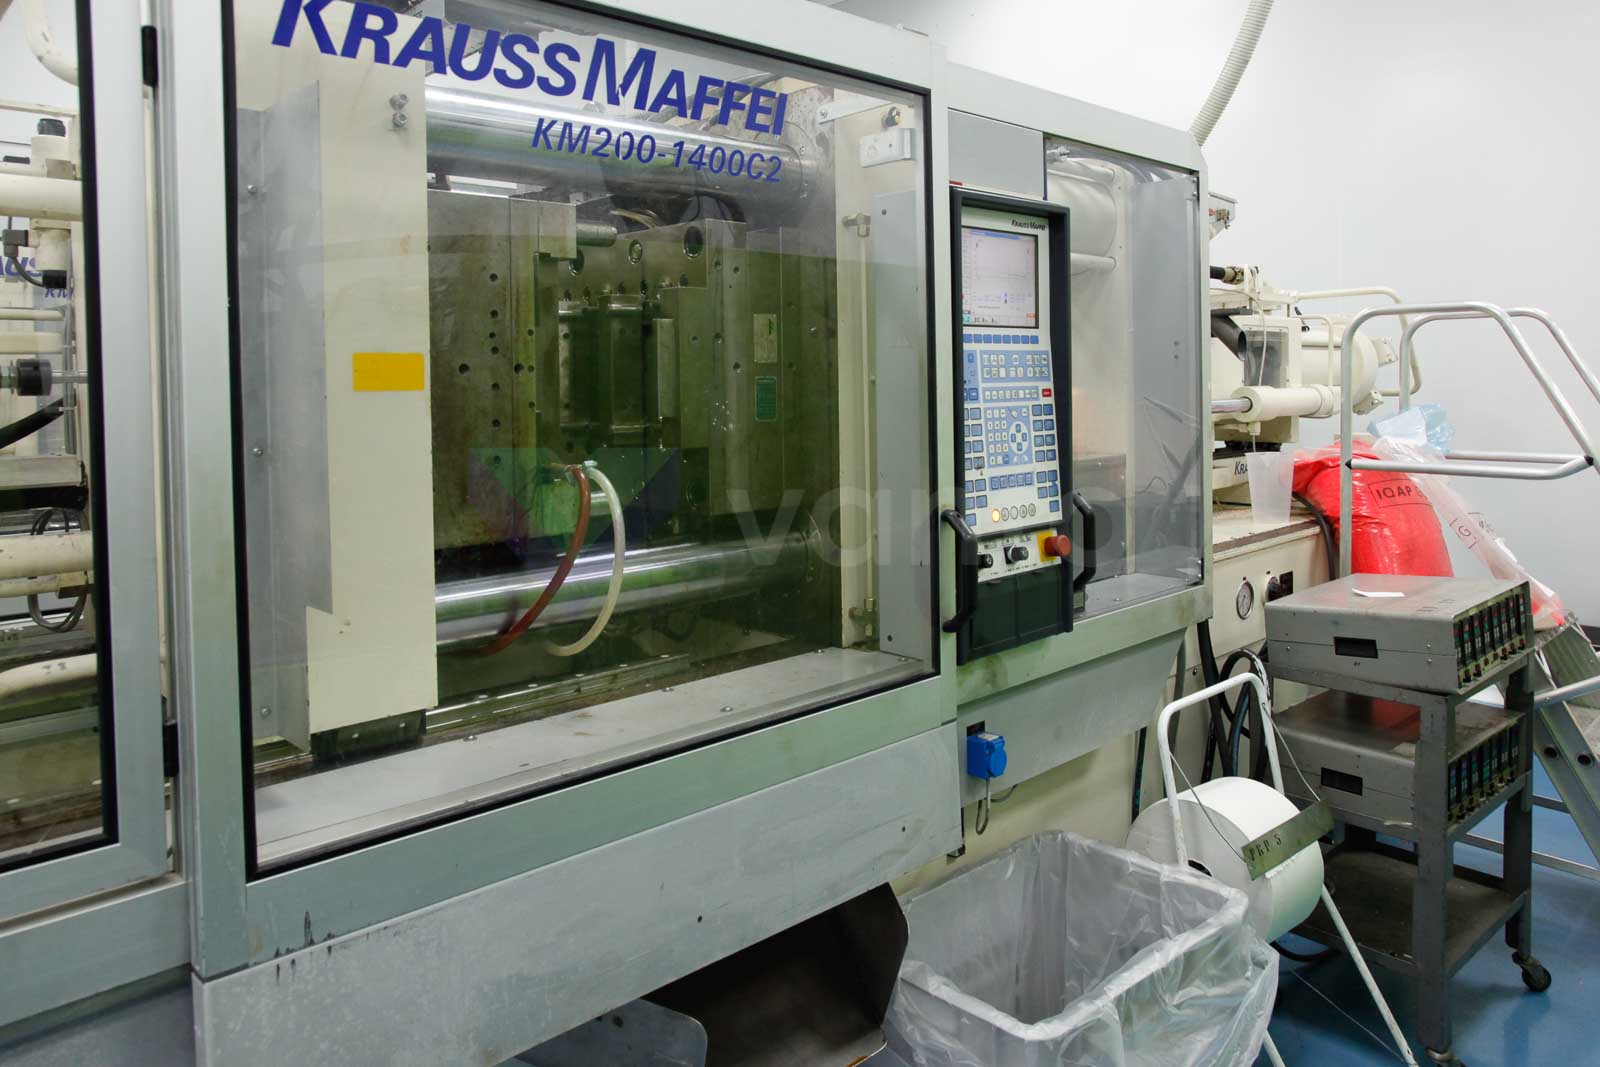 KRAUSS MAFFEI KM 200-1400 C2 200t injection molding machine (2001) id3448